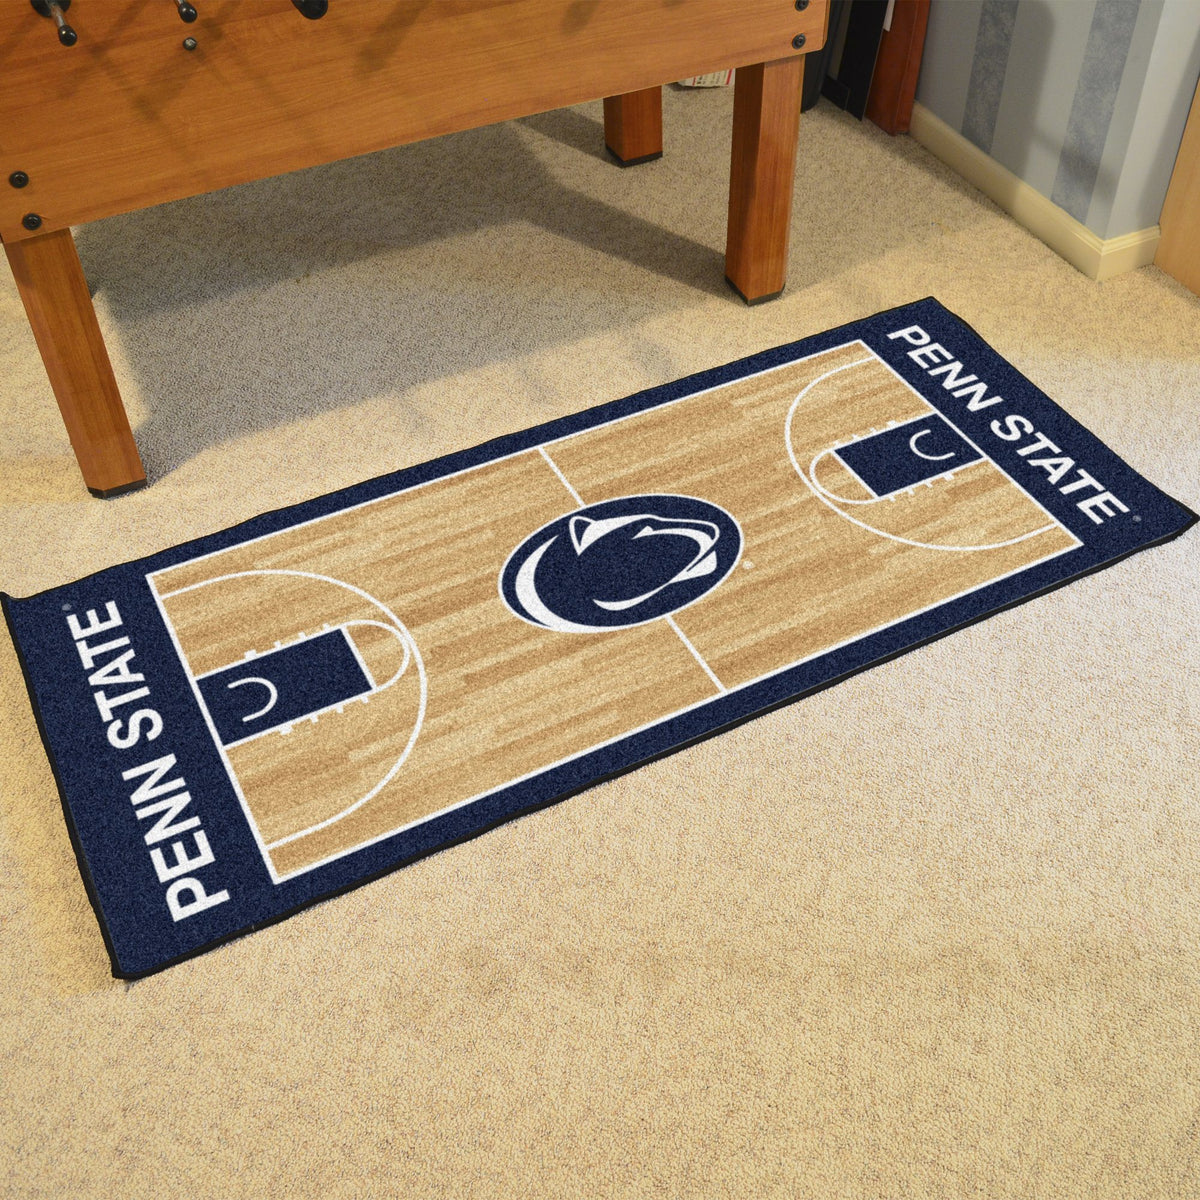 Collegiate - NCAA Basketball Runner Collegiate Mats, Rectangular Mats, NCAA Basketball Runner, Collegiate, Home Fan Mats Penn State